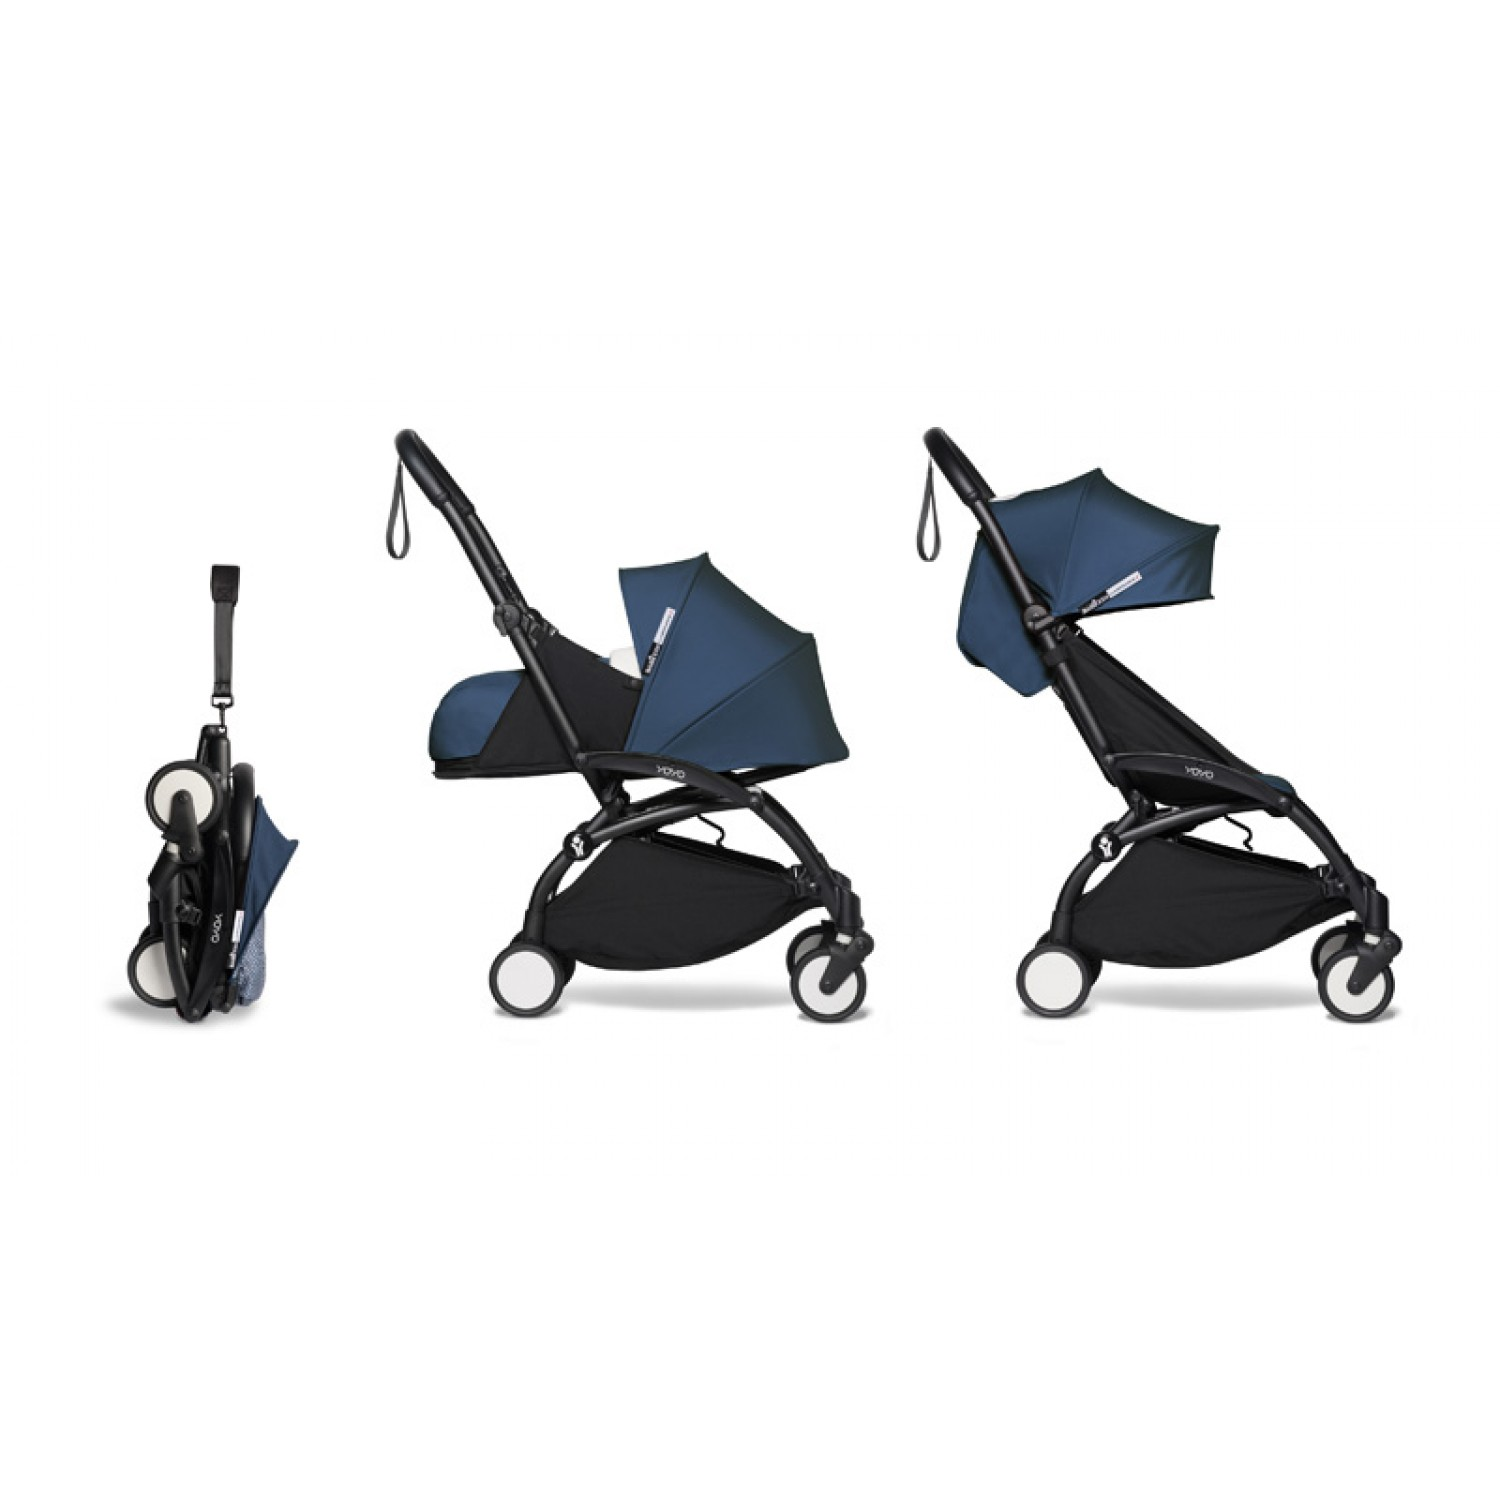 Complete BABYZEN stroller YOYO2  0+ and 6+ | Black Chassis Air France